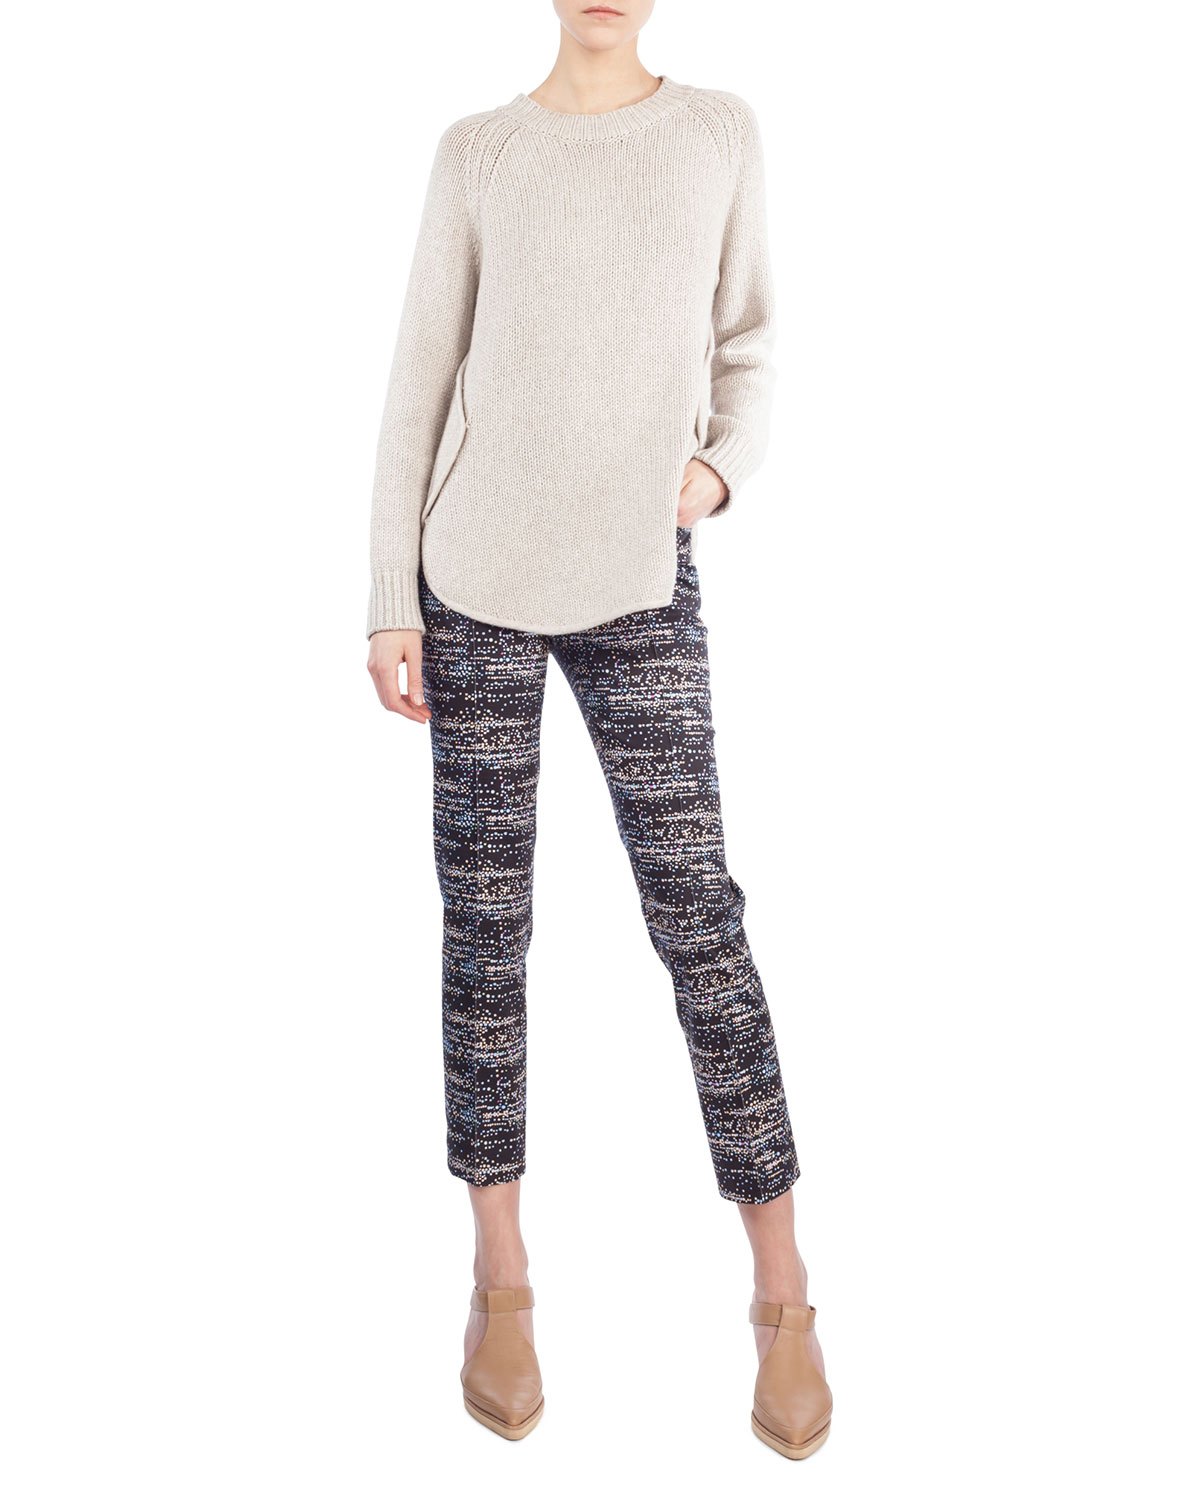 Franca Twilight City Pants